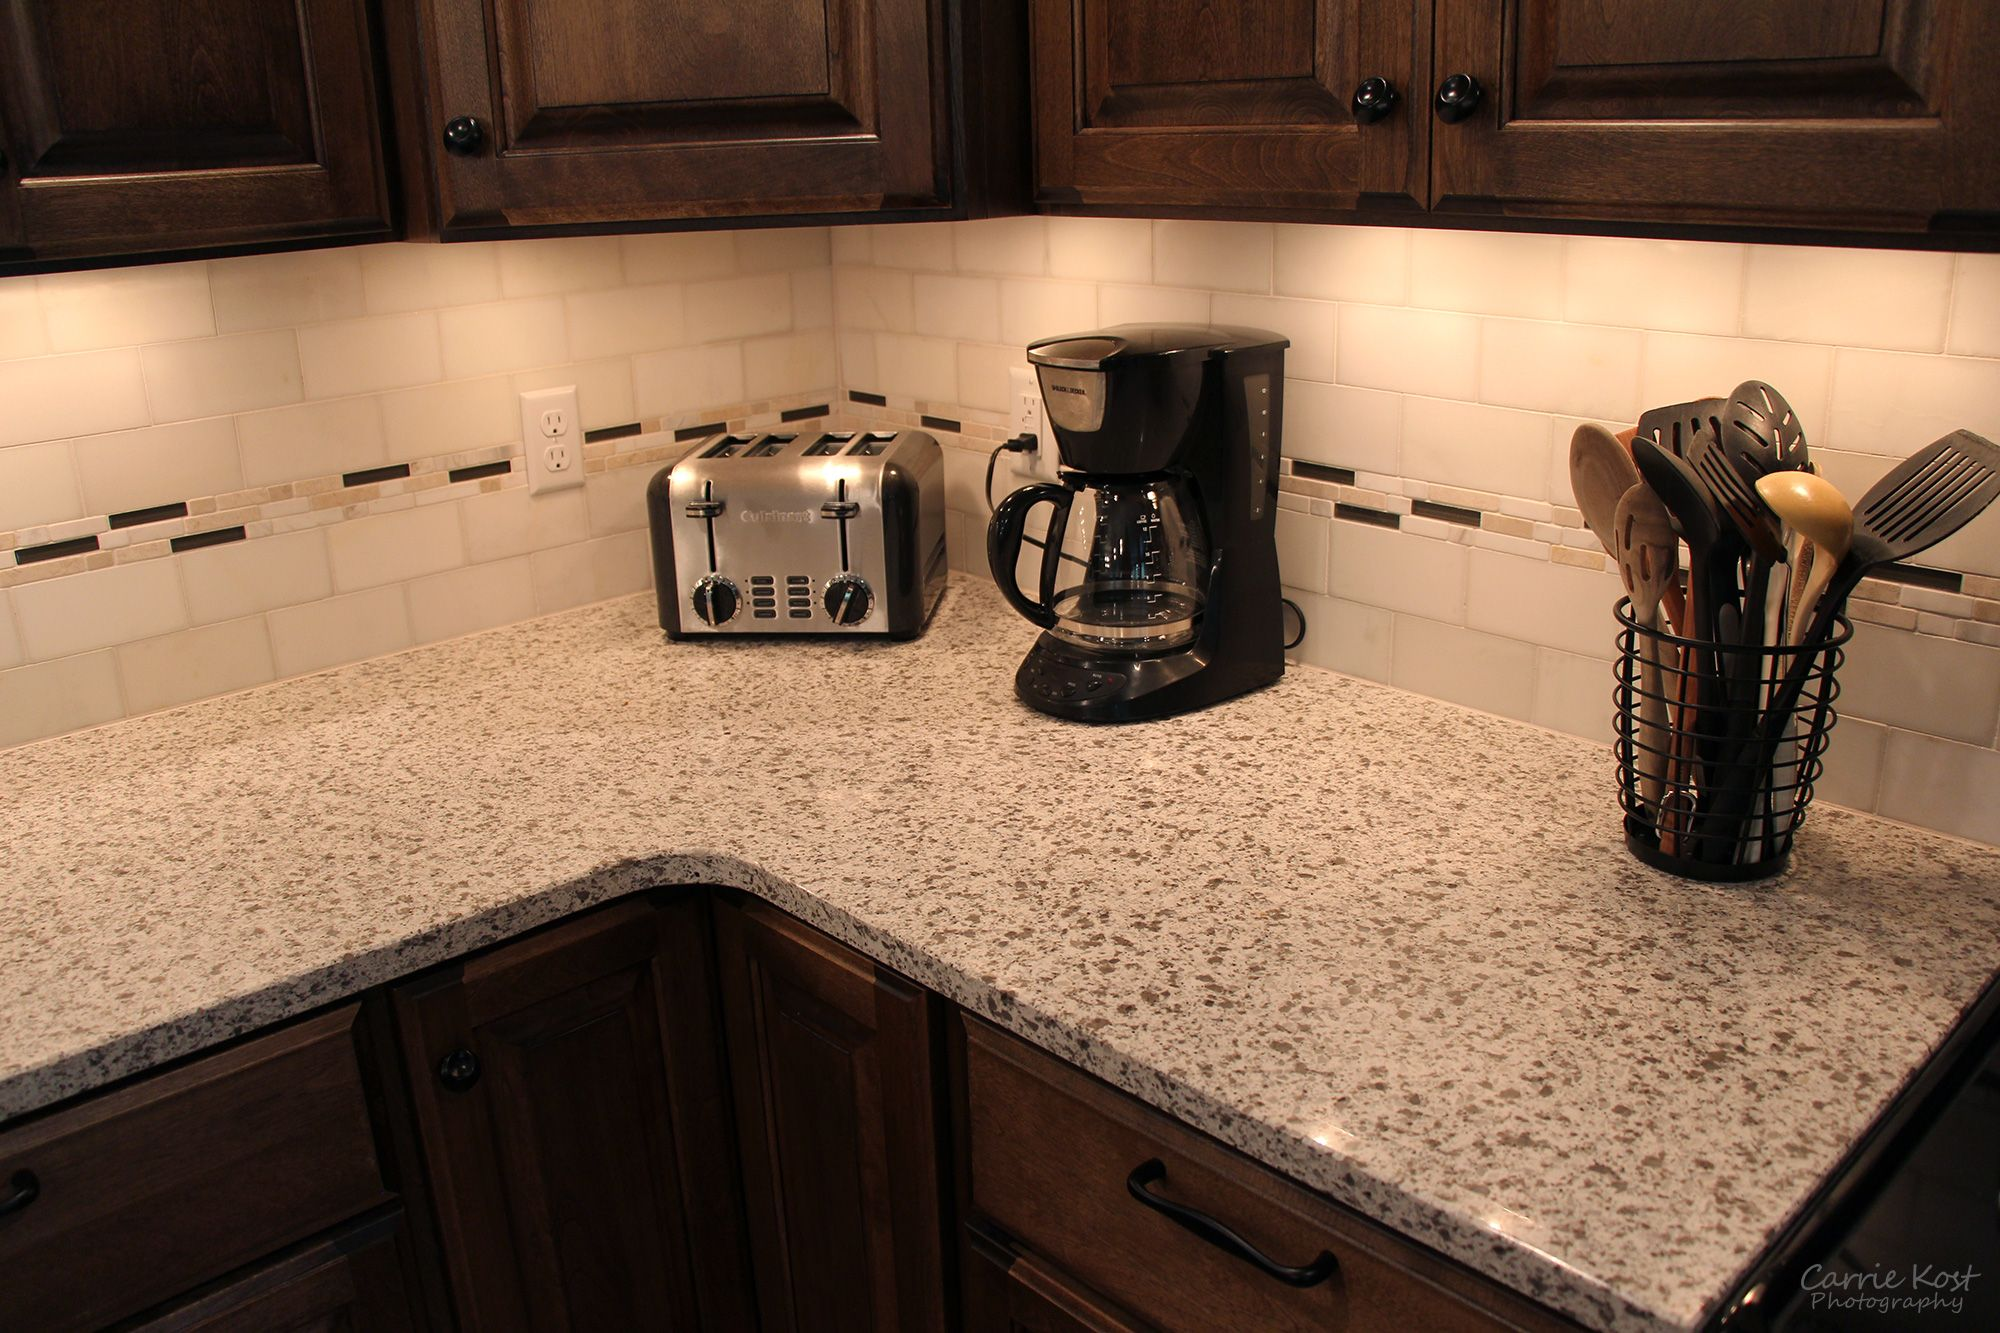 These Custom Quartz Countertops Are Smooth And Seamless. Soft Cream Colored  Marble Subway Tile And